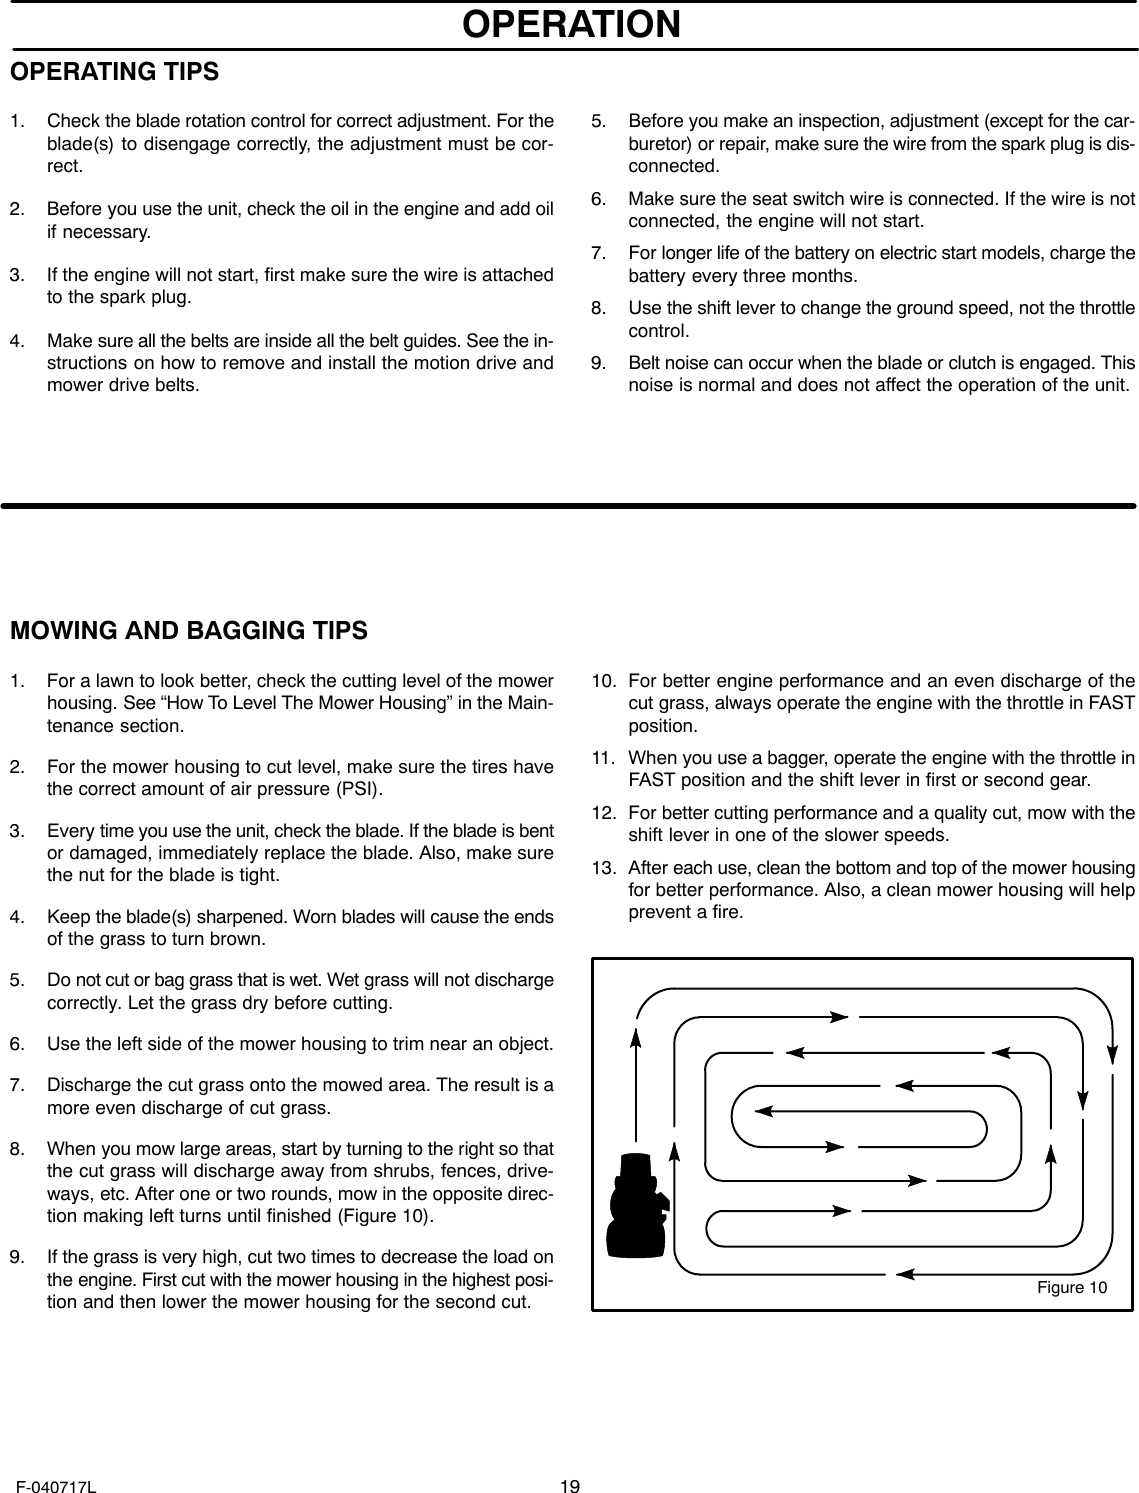 Murray 387002X92A Users Manual F 040717L on